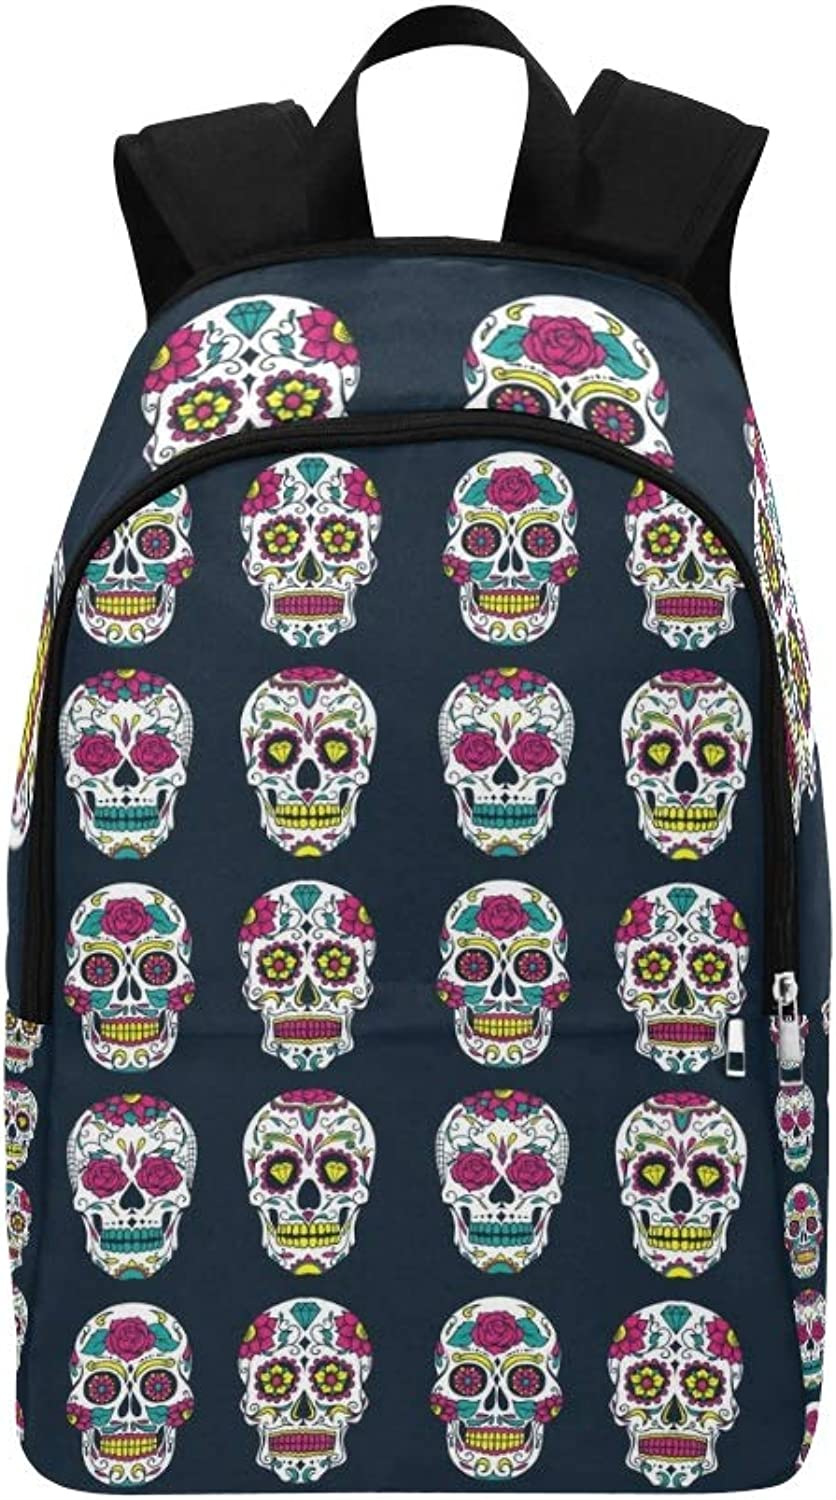 Day Dead colorful Sugar Skull Casual Daypack Travel Bag College School Backpack for Mens and Women